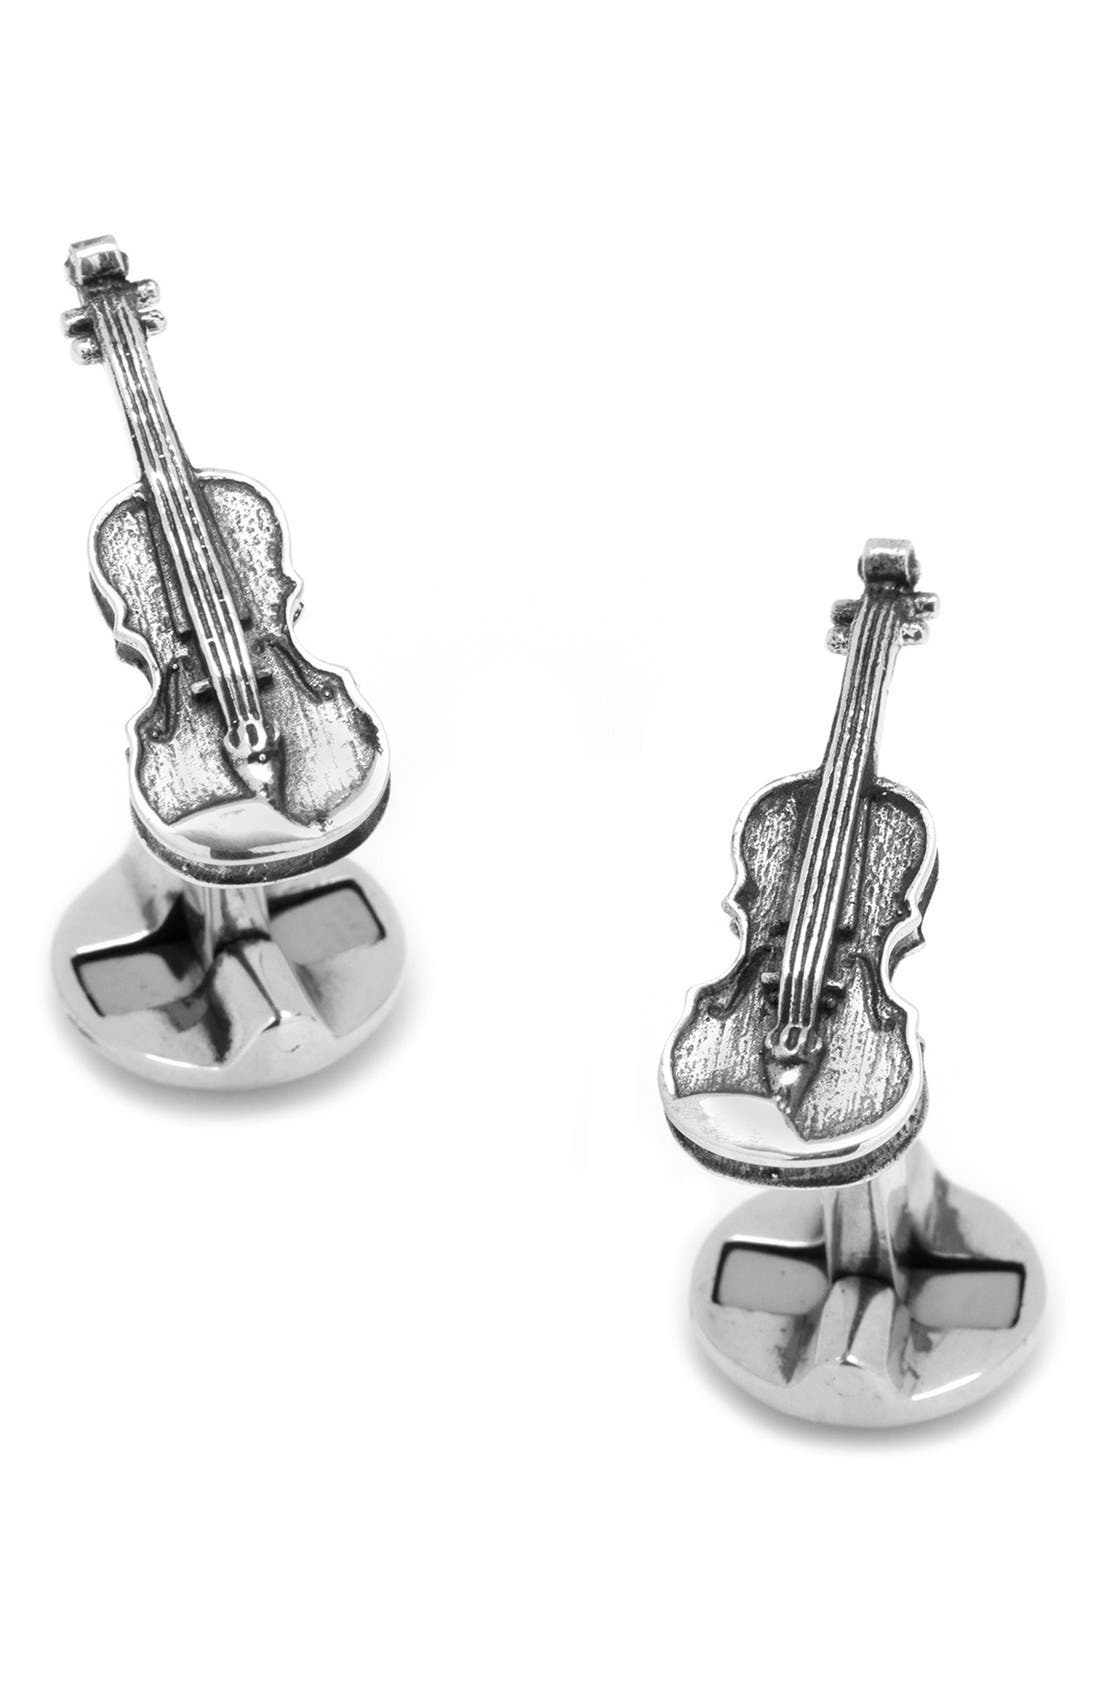 Main Image - Ox and Bull Trading Co. Violin Cuff Links